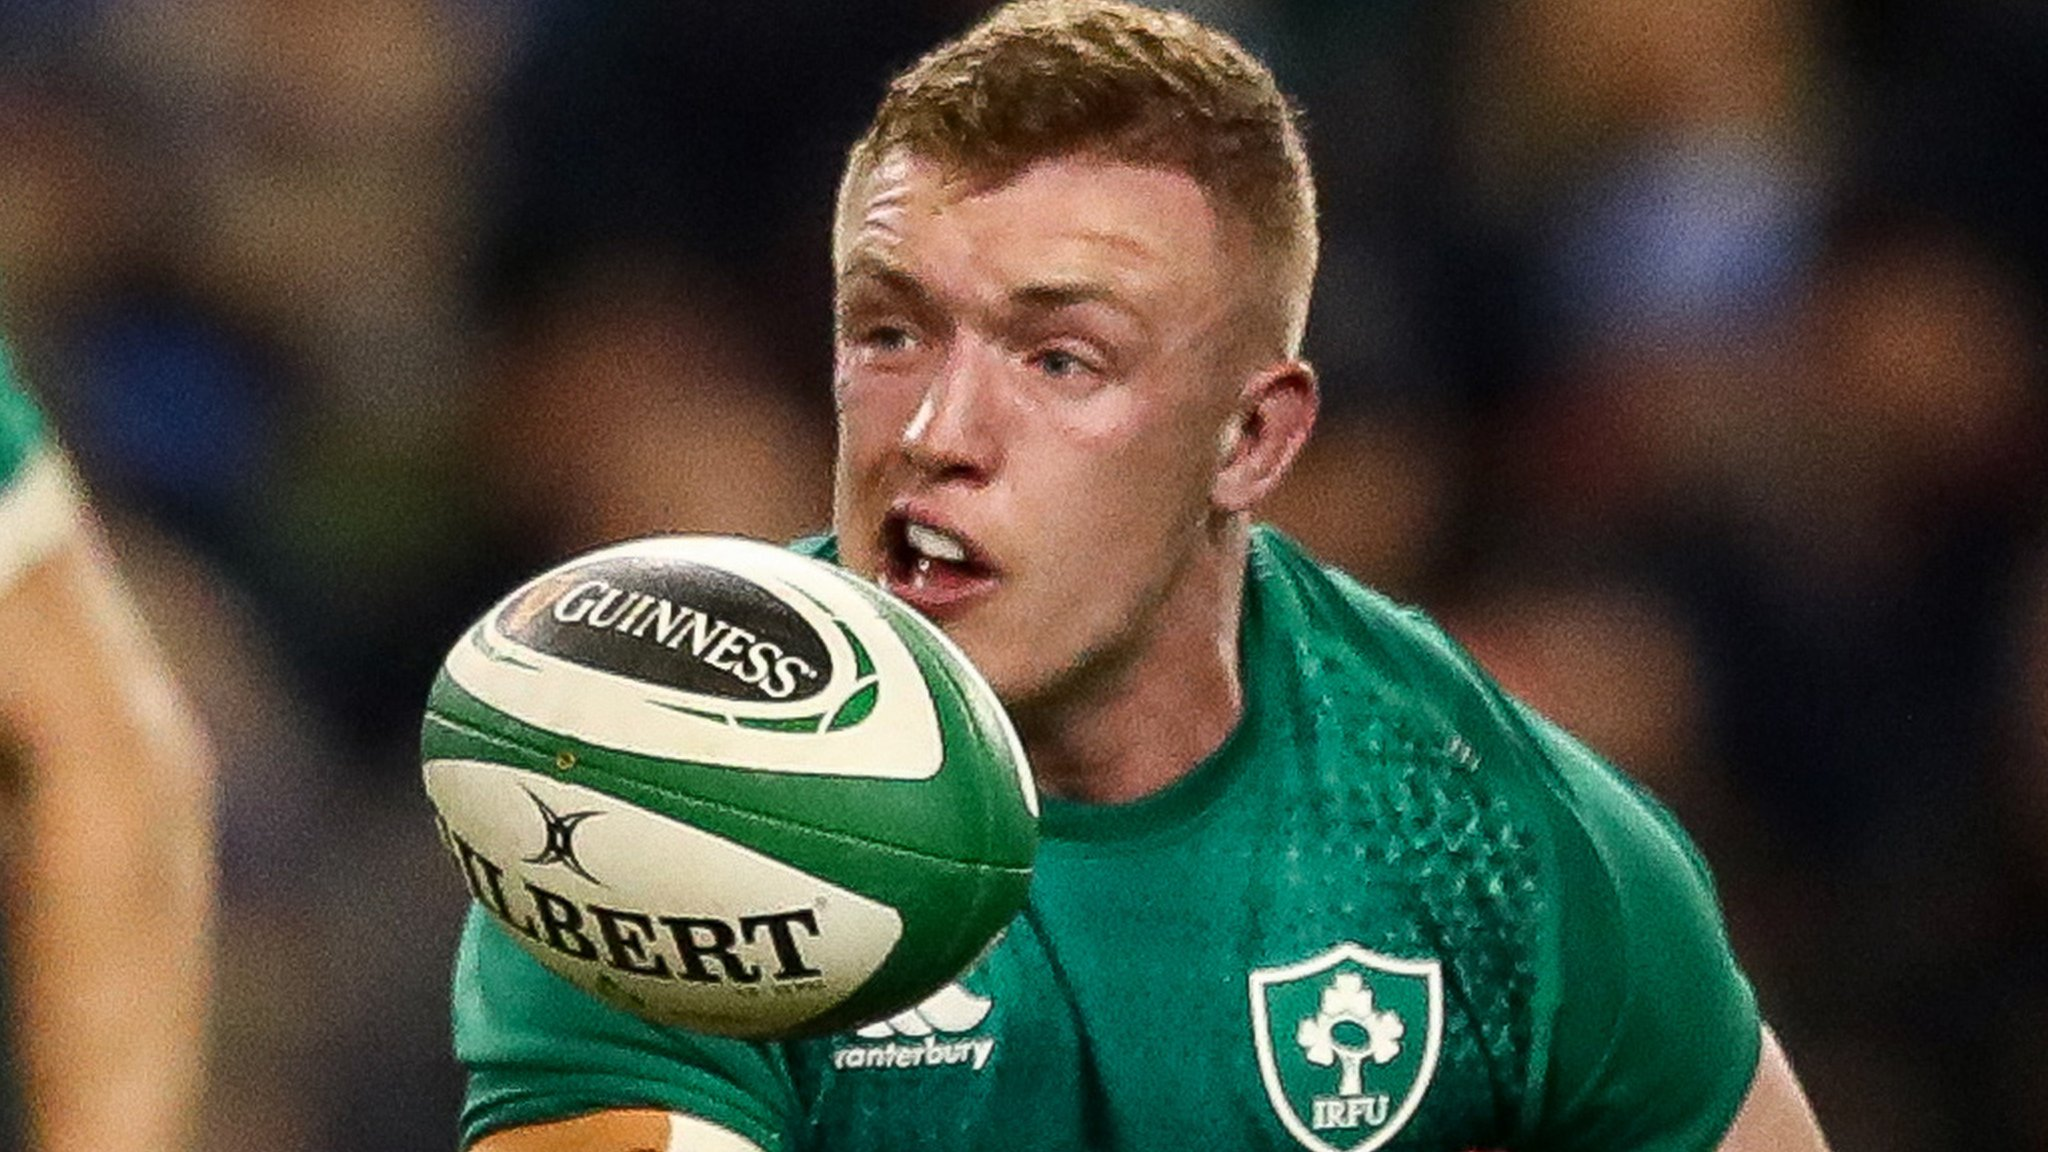 Ireland v New Zealand: Irish flanker Leavy out of Dublin game